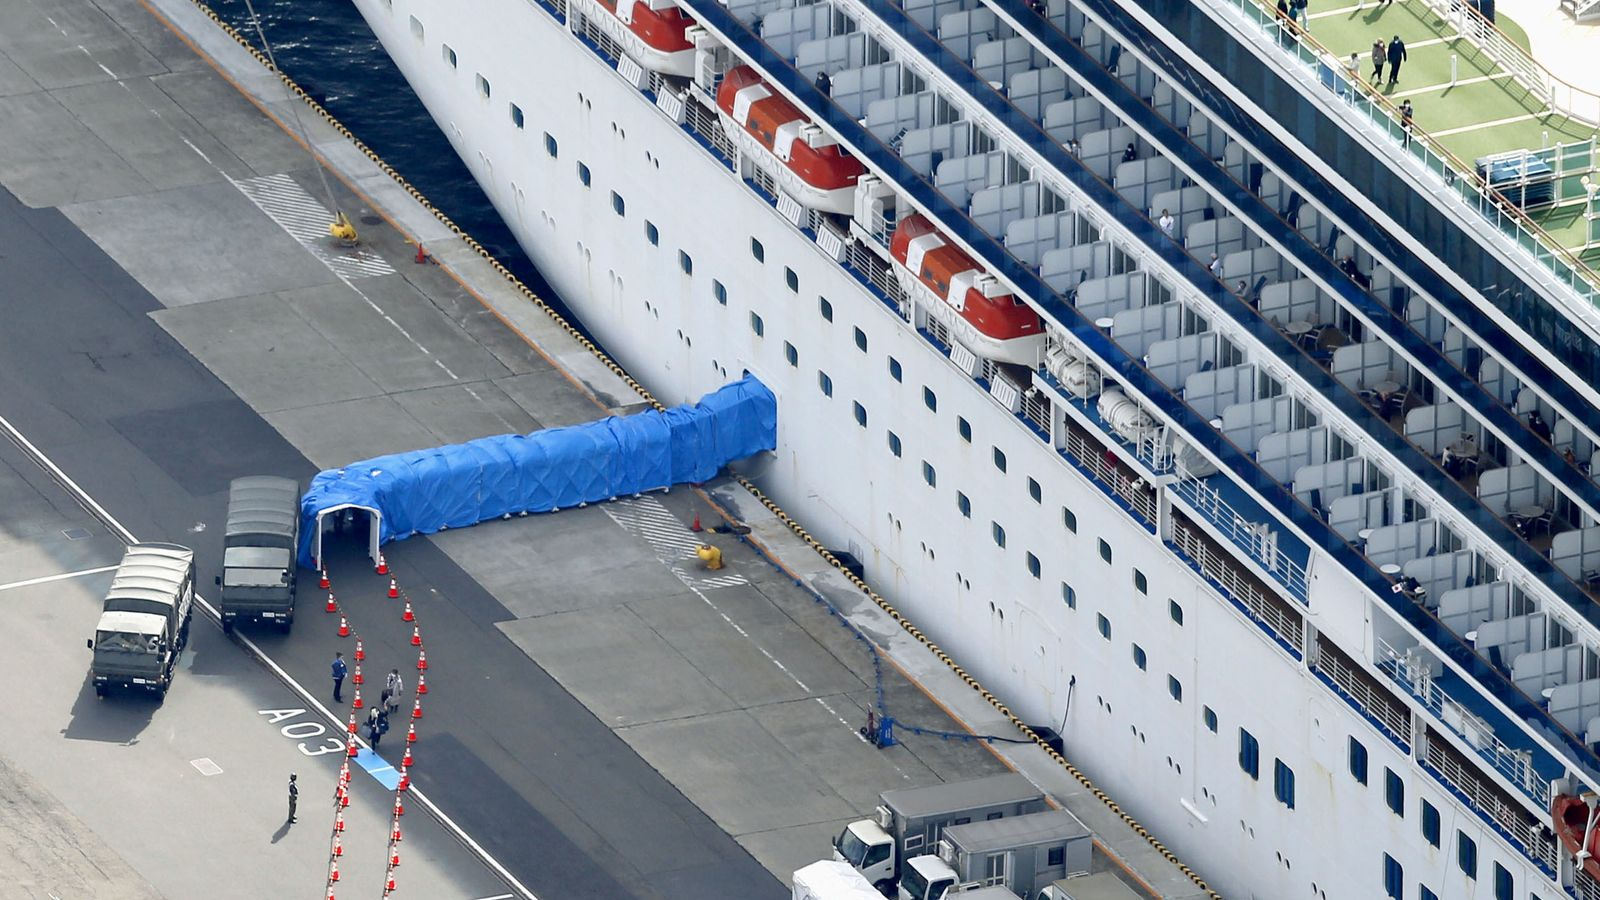 Coronavirus: Britons on cruise ship in Japan face 14-day quarantine on the Wirral